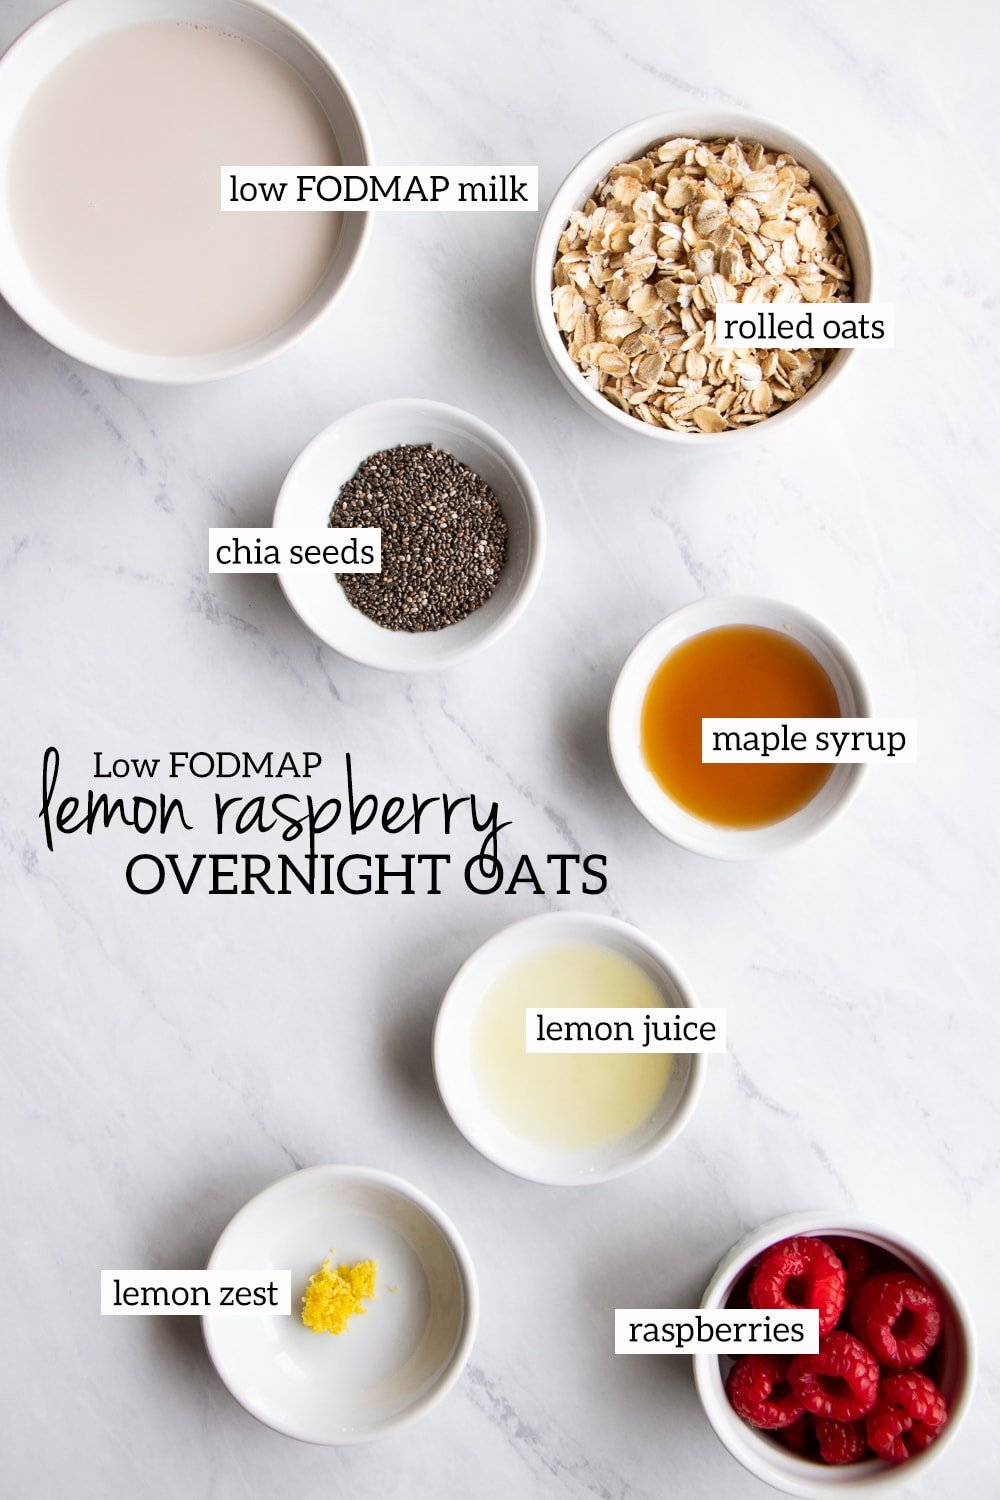 Ingredients needed for low FODMAP lemon-raspberry overnight oats measured out into individual white bowls.